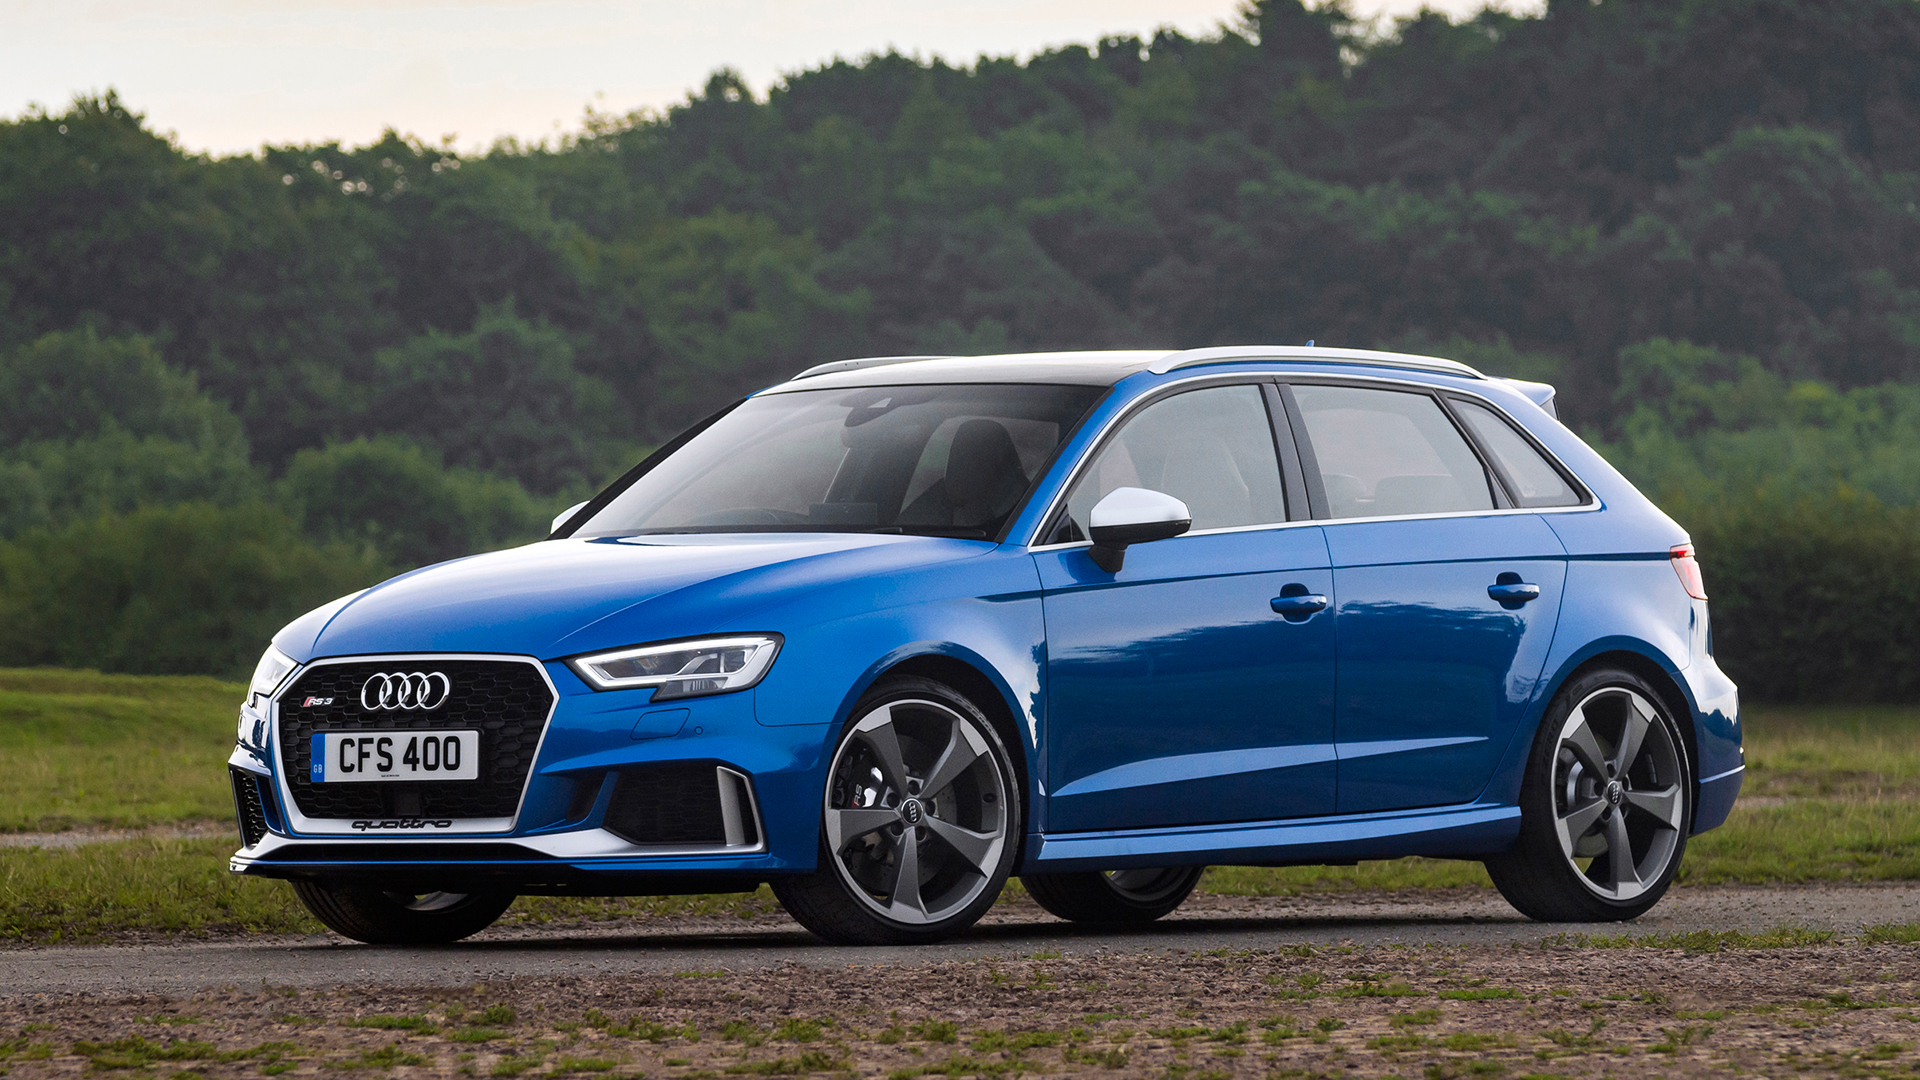 Used Audi RS3 Cars for Sale on Auto Trader UK